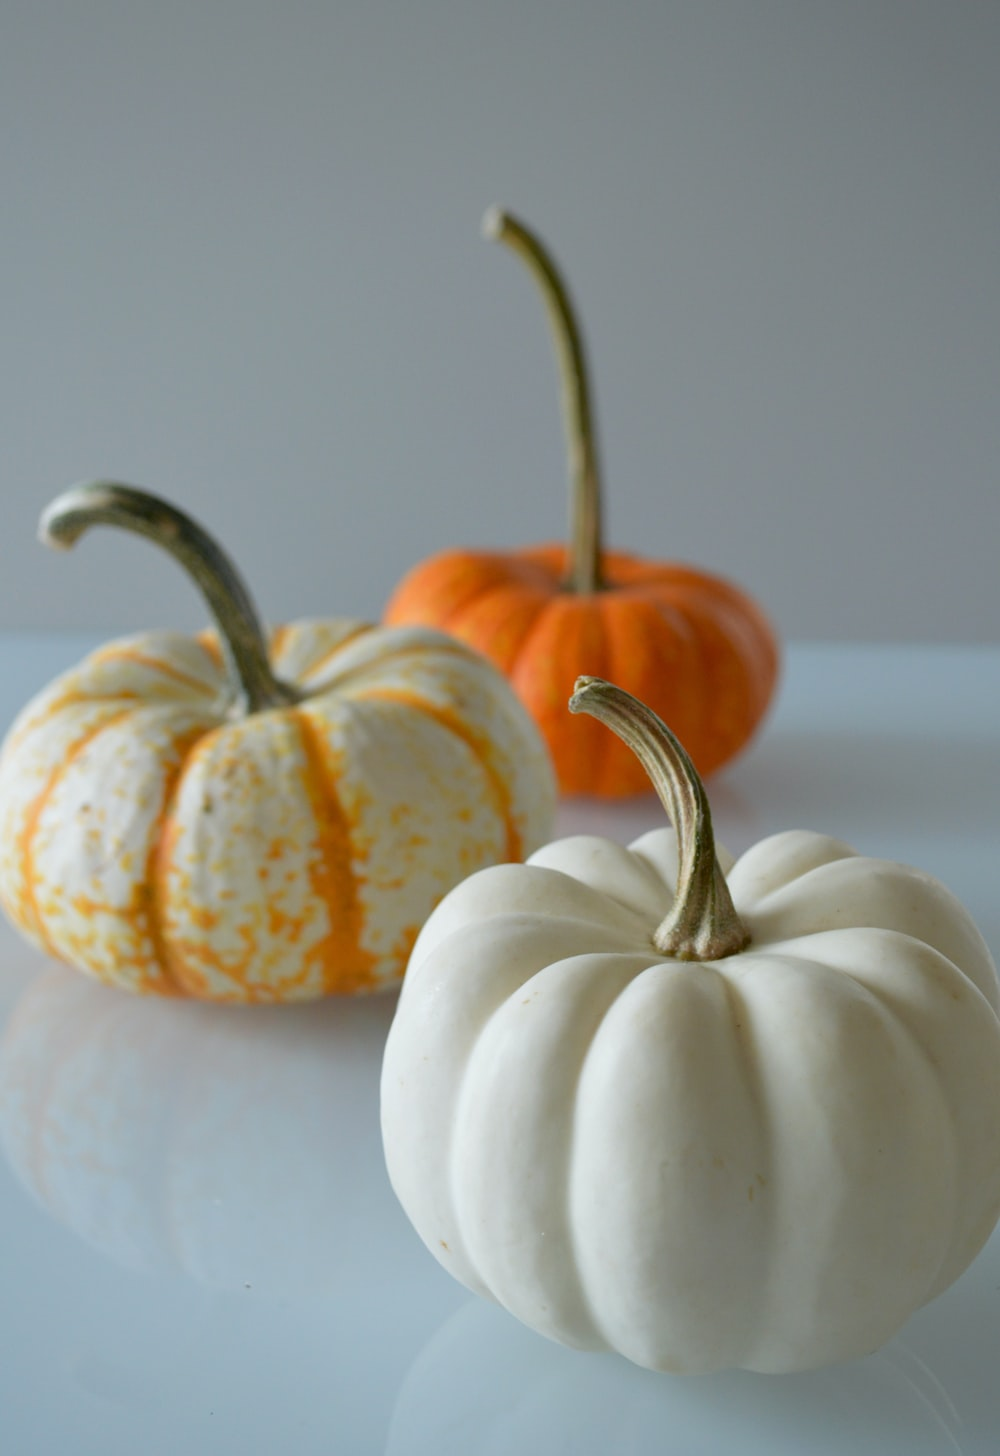 two white and one orange pumpkins on white surface